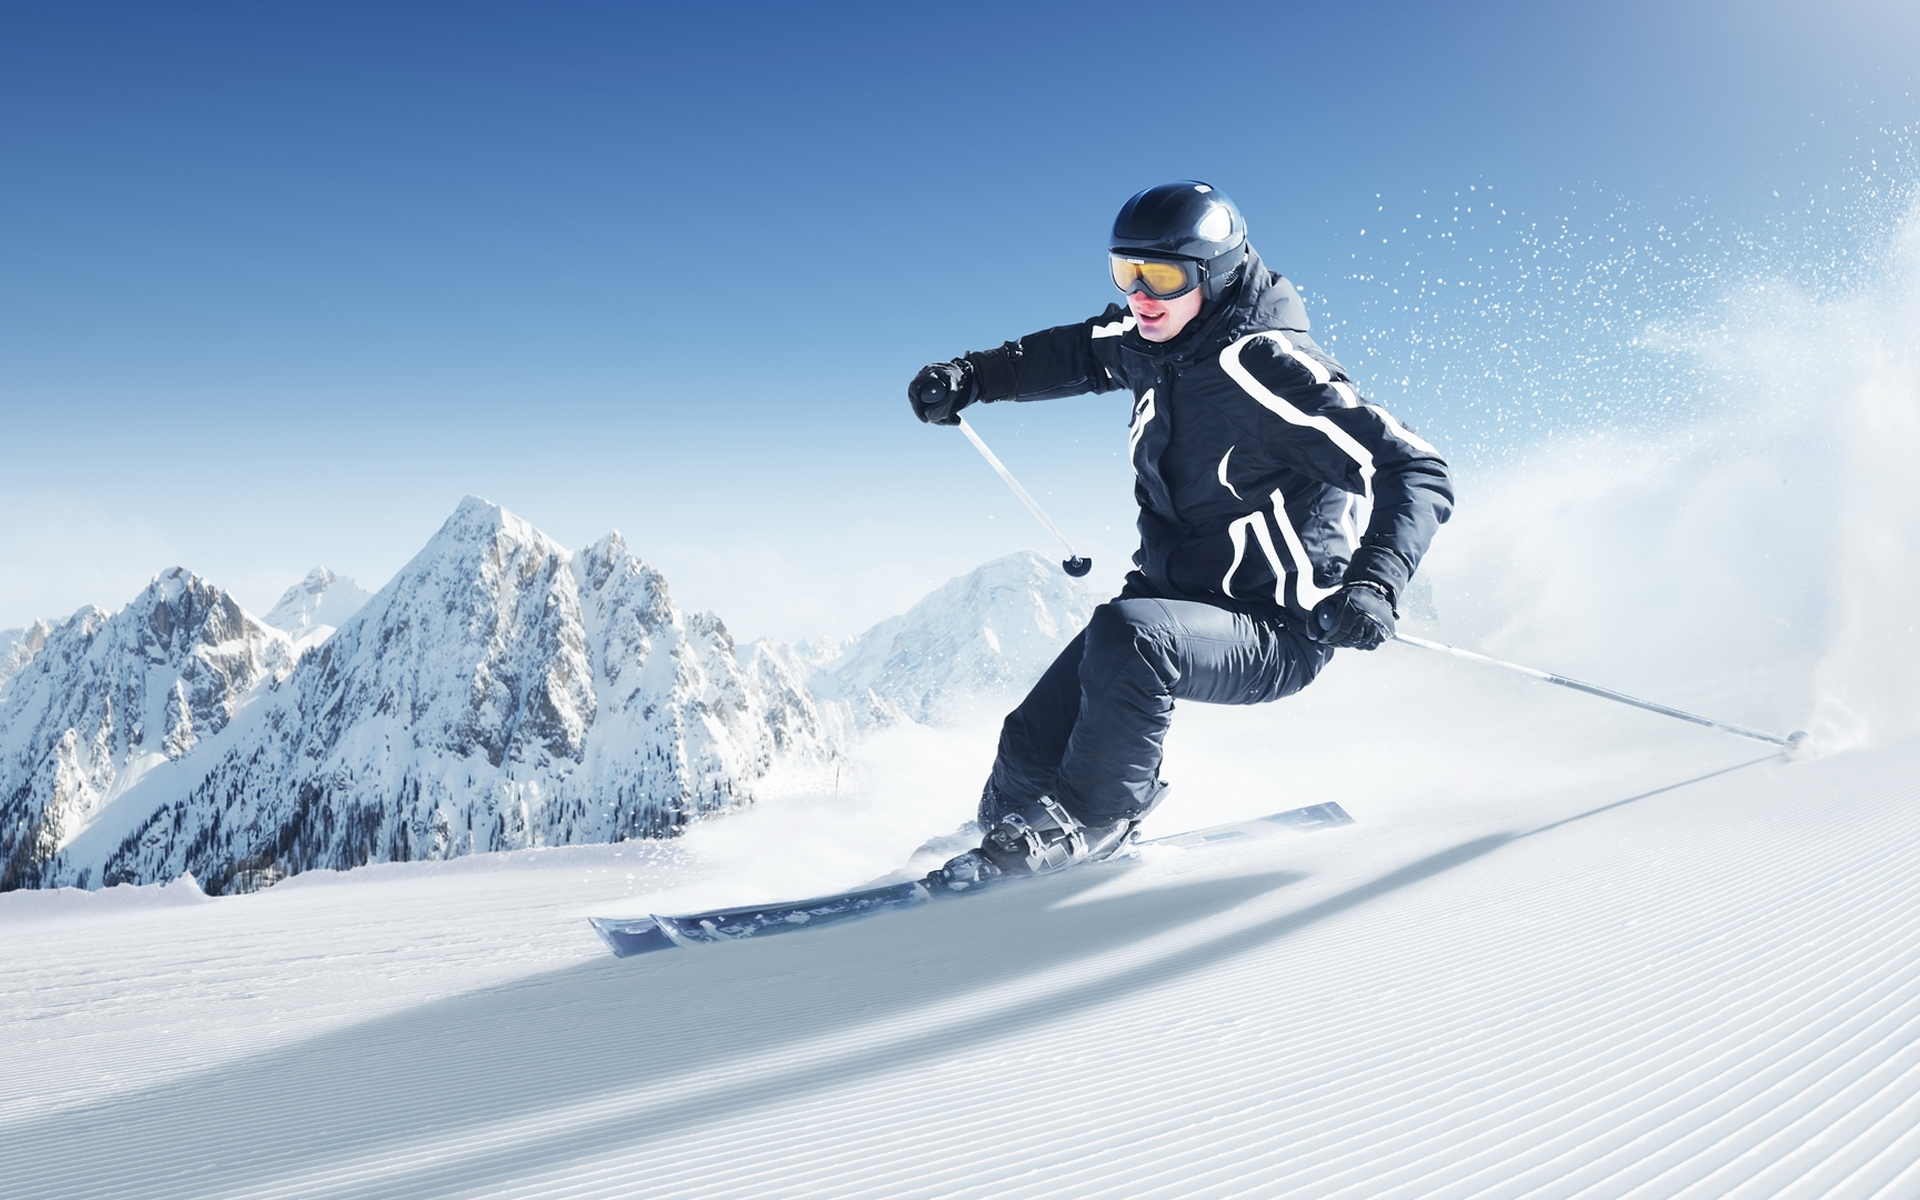 Skiing Wallpaper Skiing Hd Wallpaper Background Image 1920x1200 Id 324002